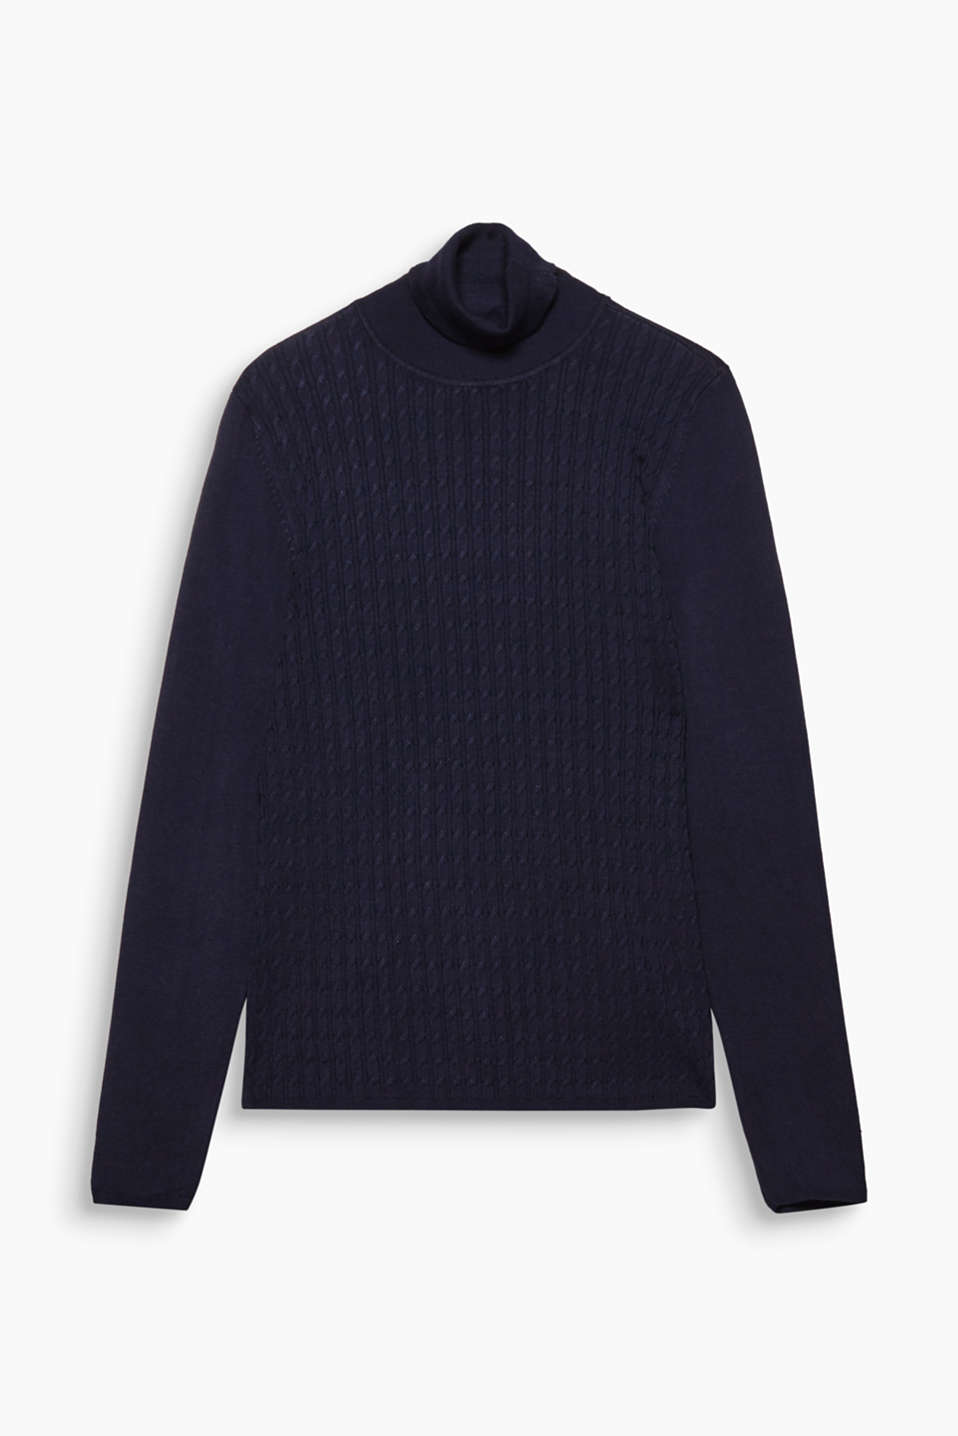 Fine cables on the front give this classic fine knit polo neck with stretch for comfort its youthful look!